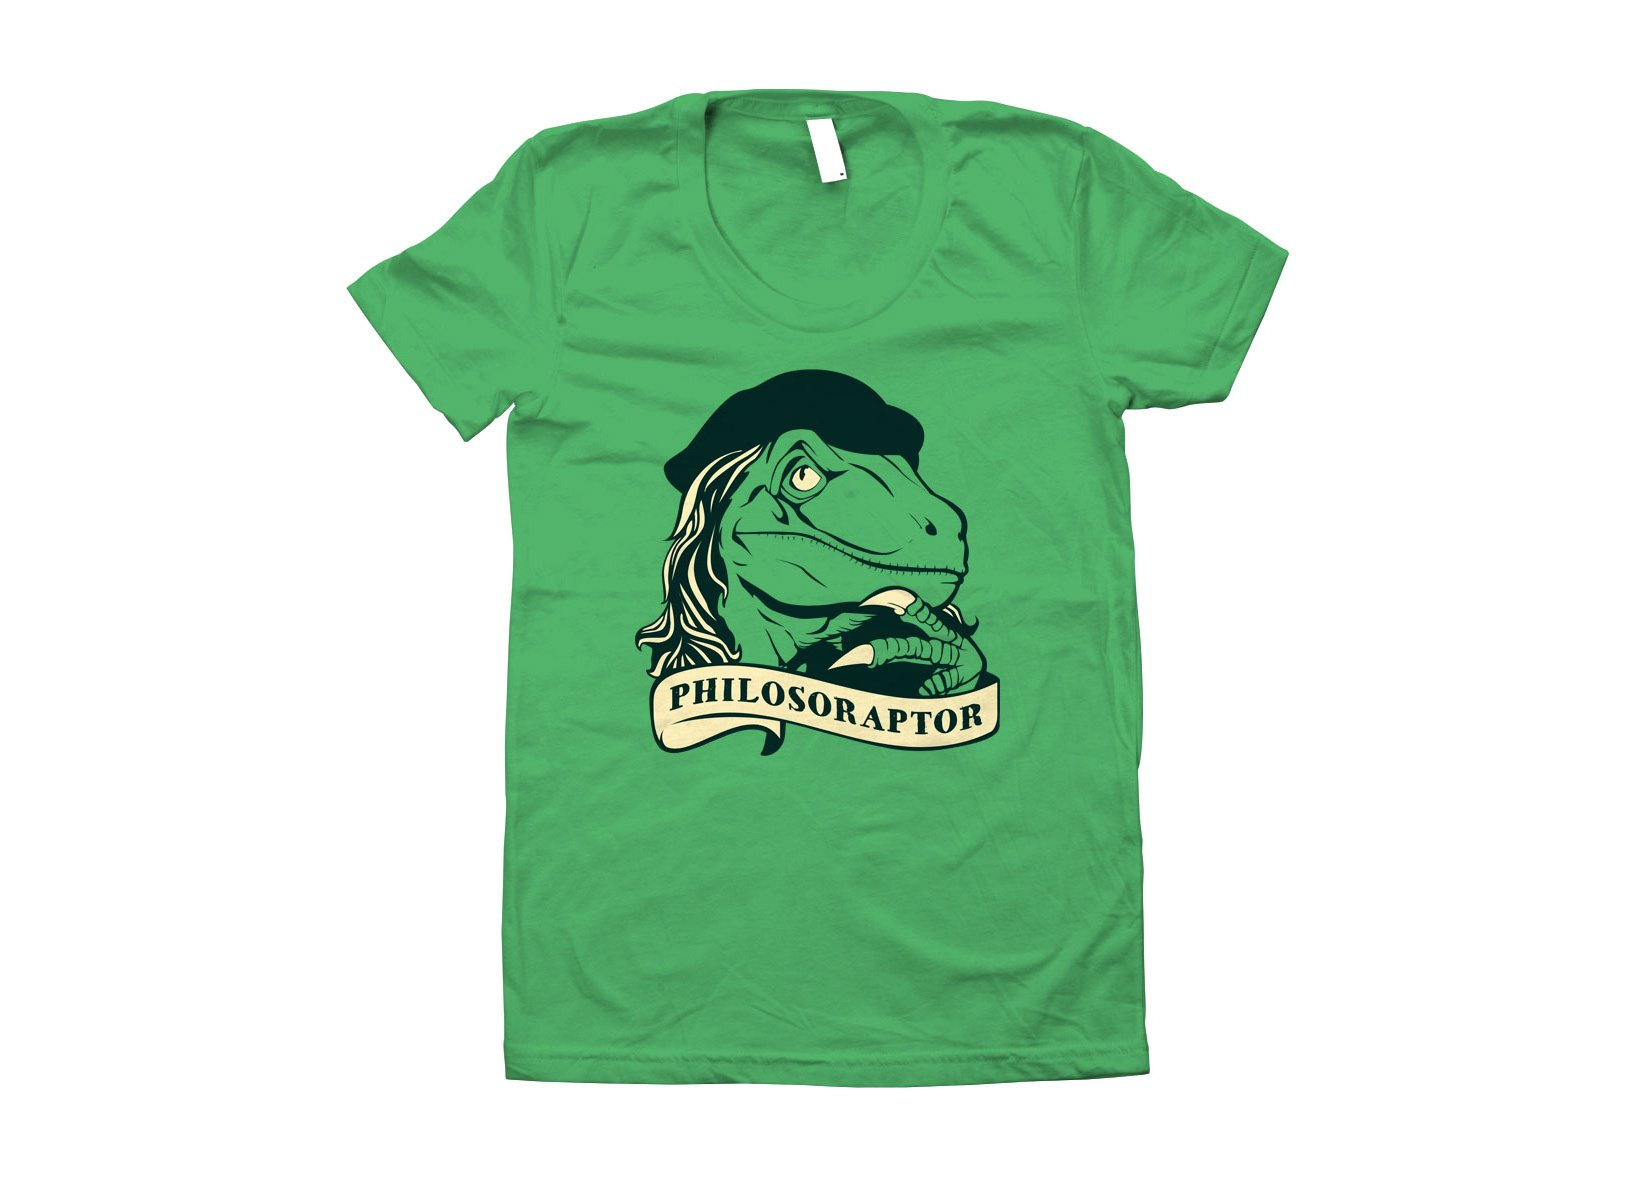 Philosoraptor on Juniors T-Shirt